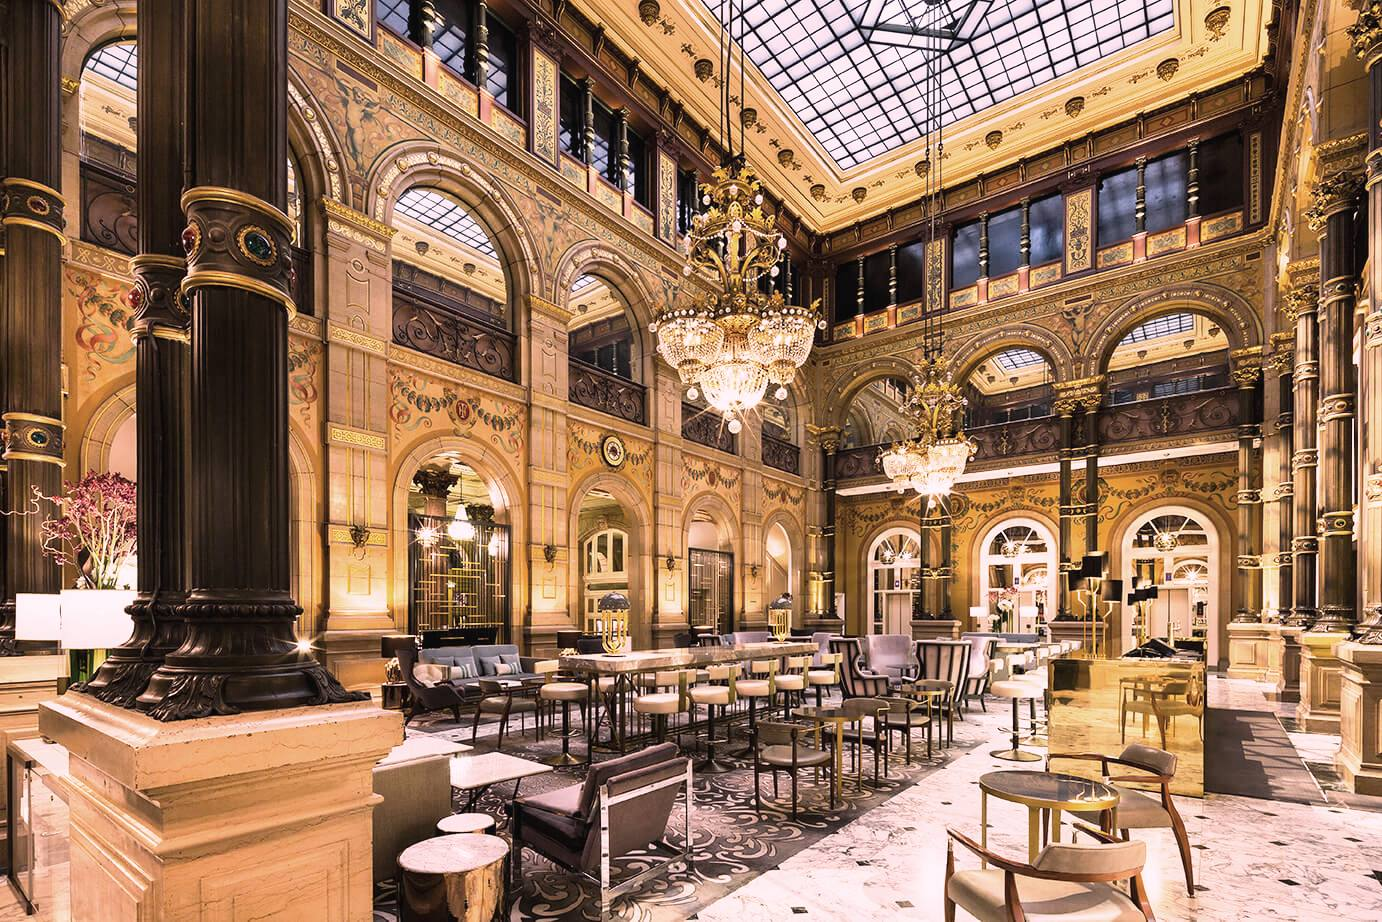 hilton-paris-opera-grand-salon-2